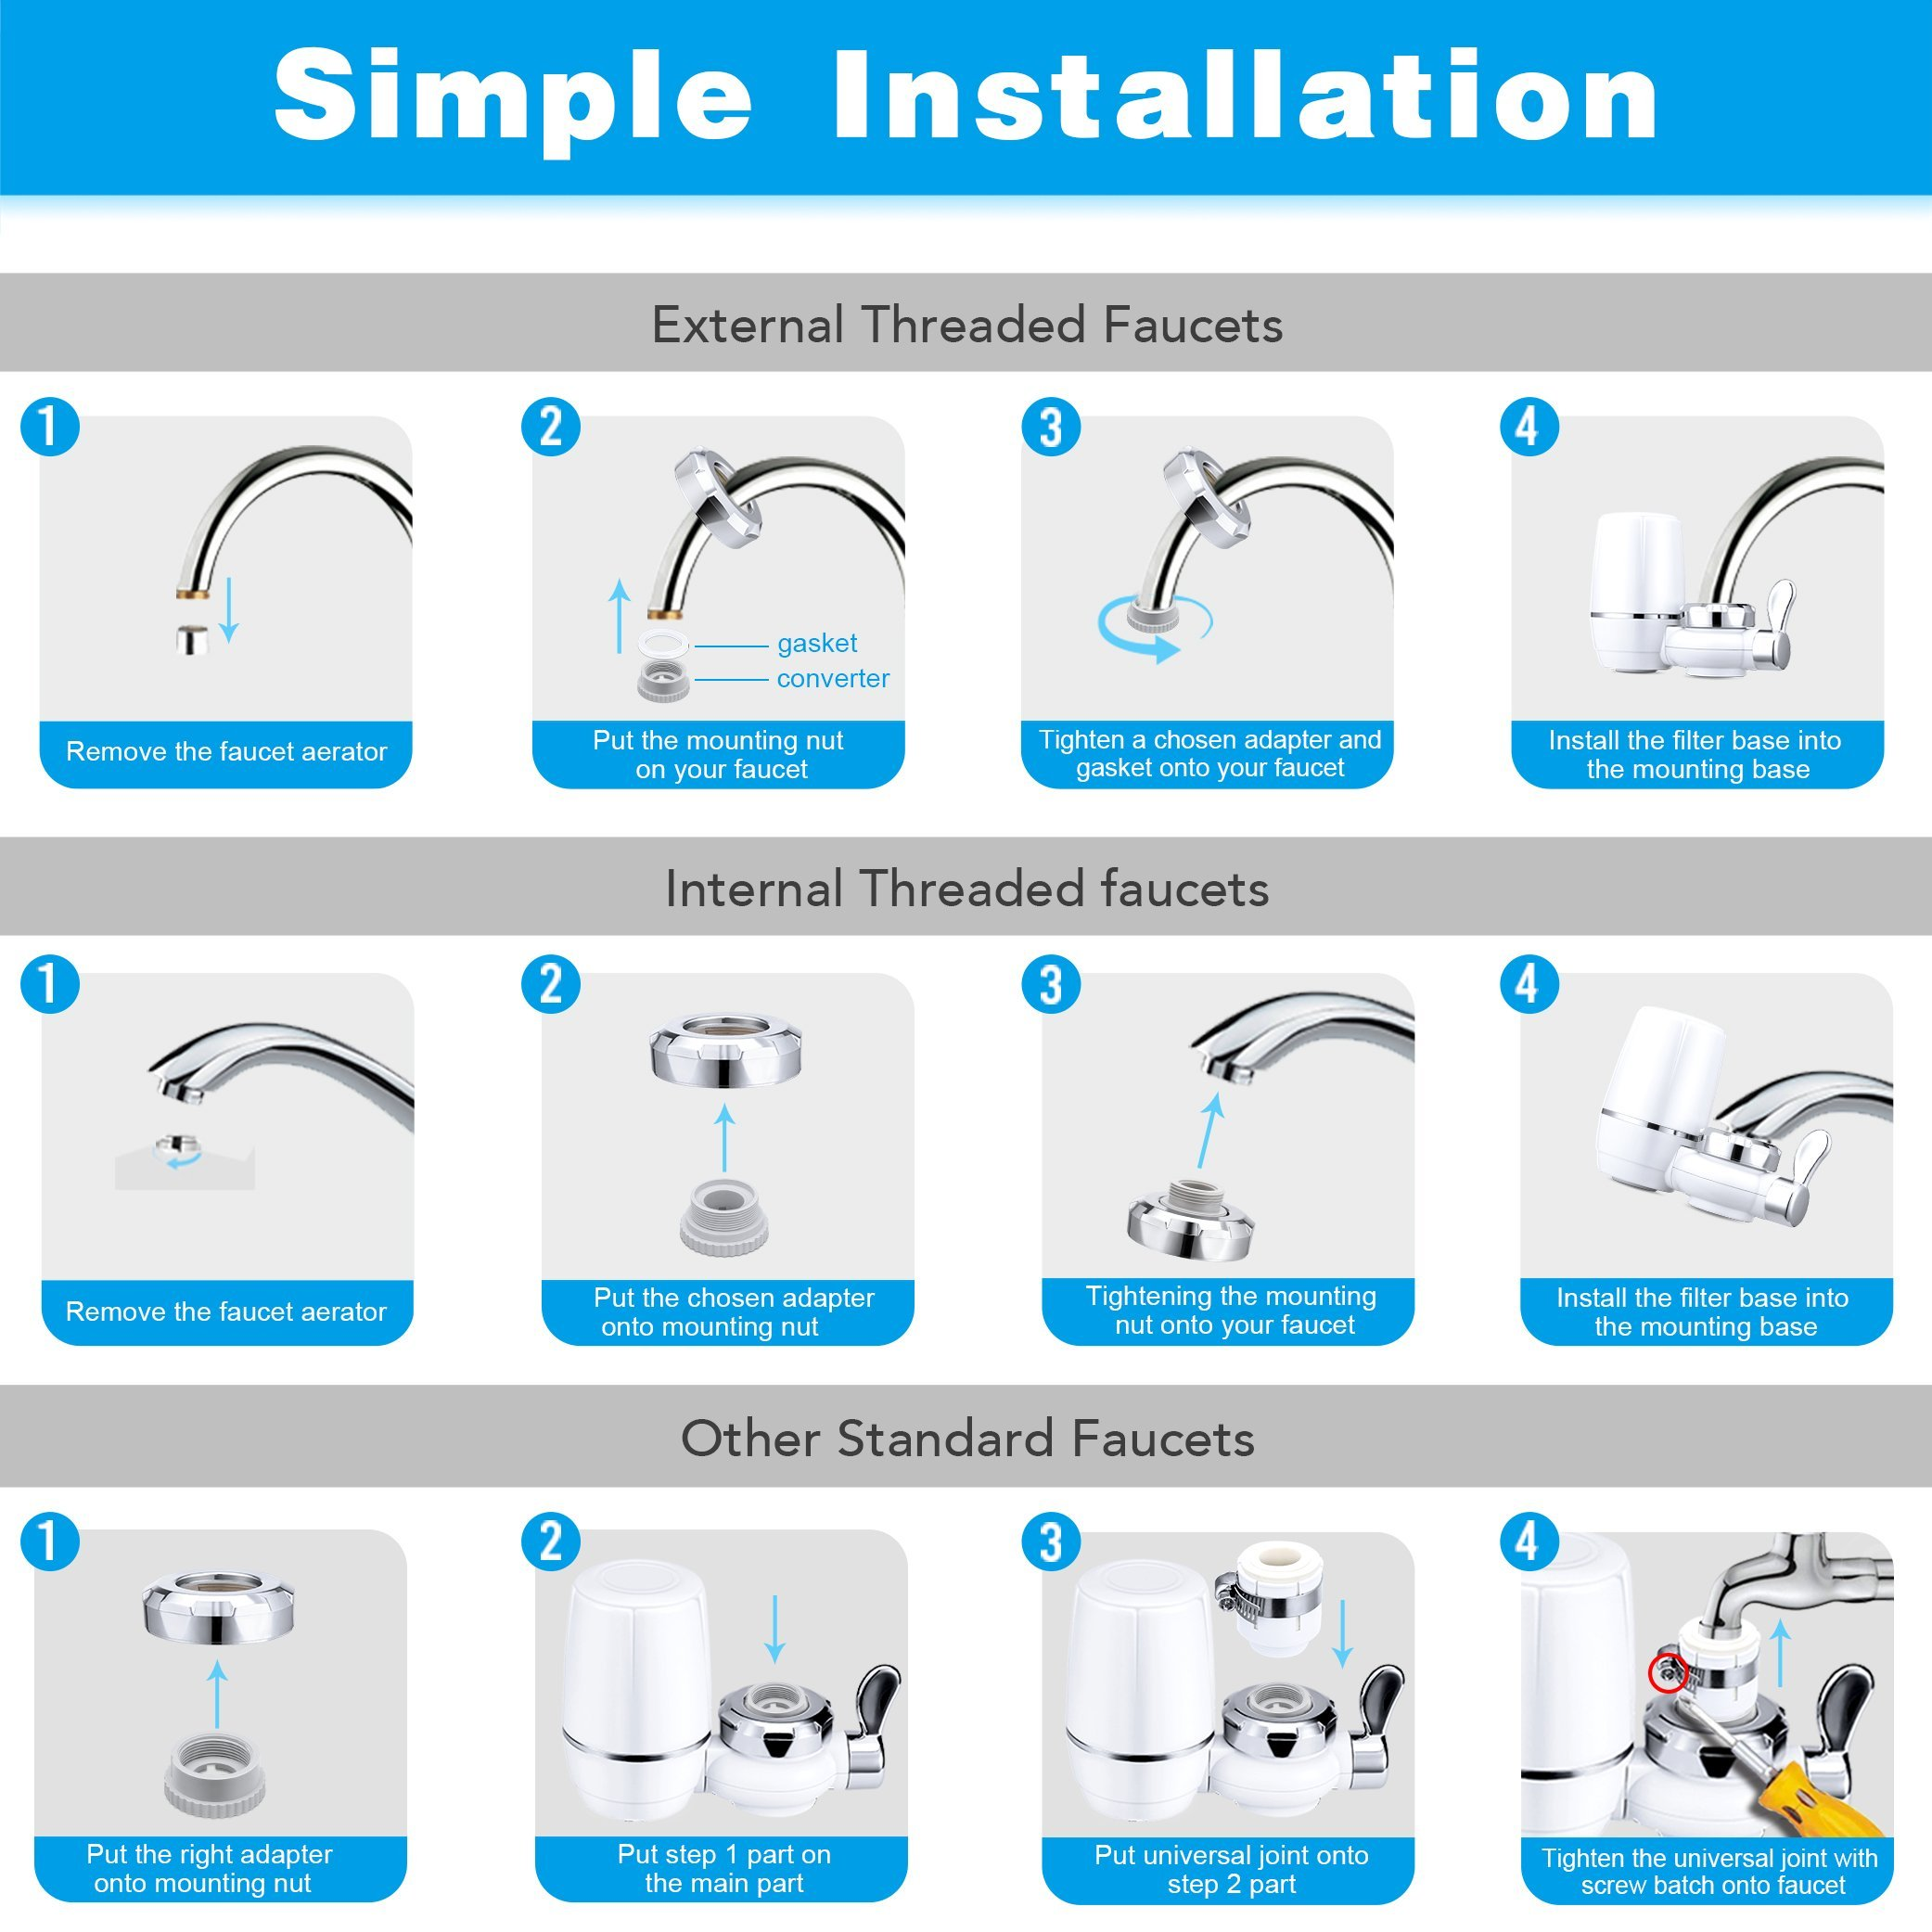 Yimaler Faucet Water Filter, On Tap Water Faucet Filtration System with 0.01 Micron 7 Stage Filtration Ceramics Filter for Home Kitchen Fits Standard Faucets Only White by Yimaler (Image #7)